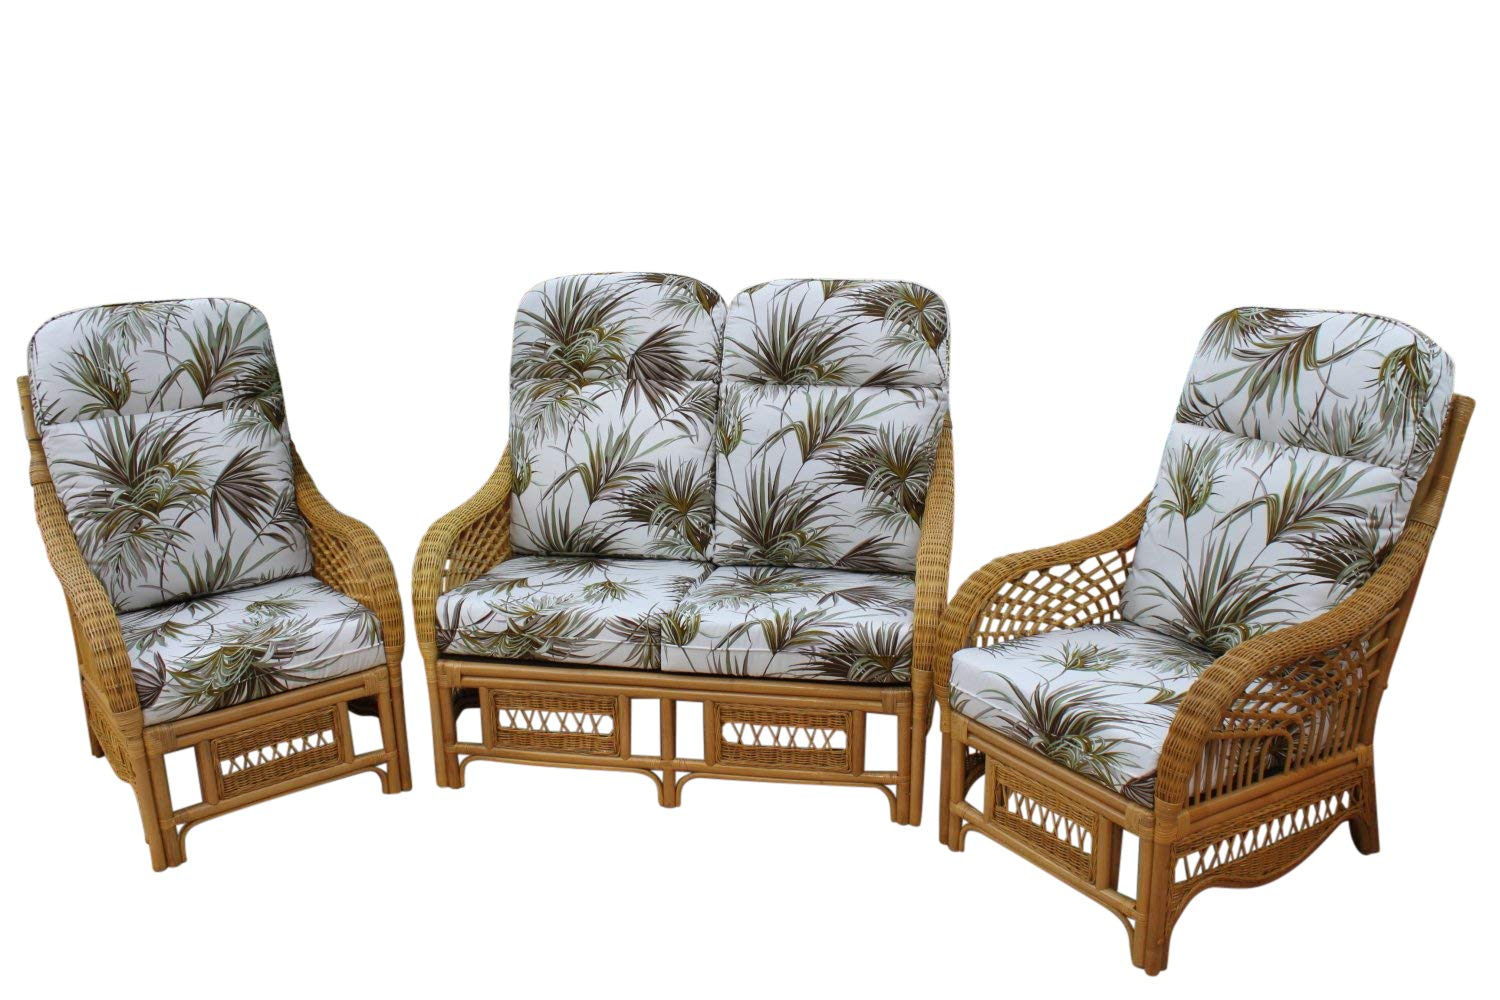 WICKER BASKET GARDEN CONSERVATORY SET INCLUDES COFFE TABLE /& 2 CHAIRS NATURAL b